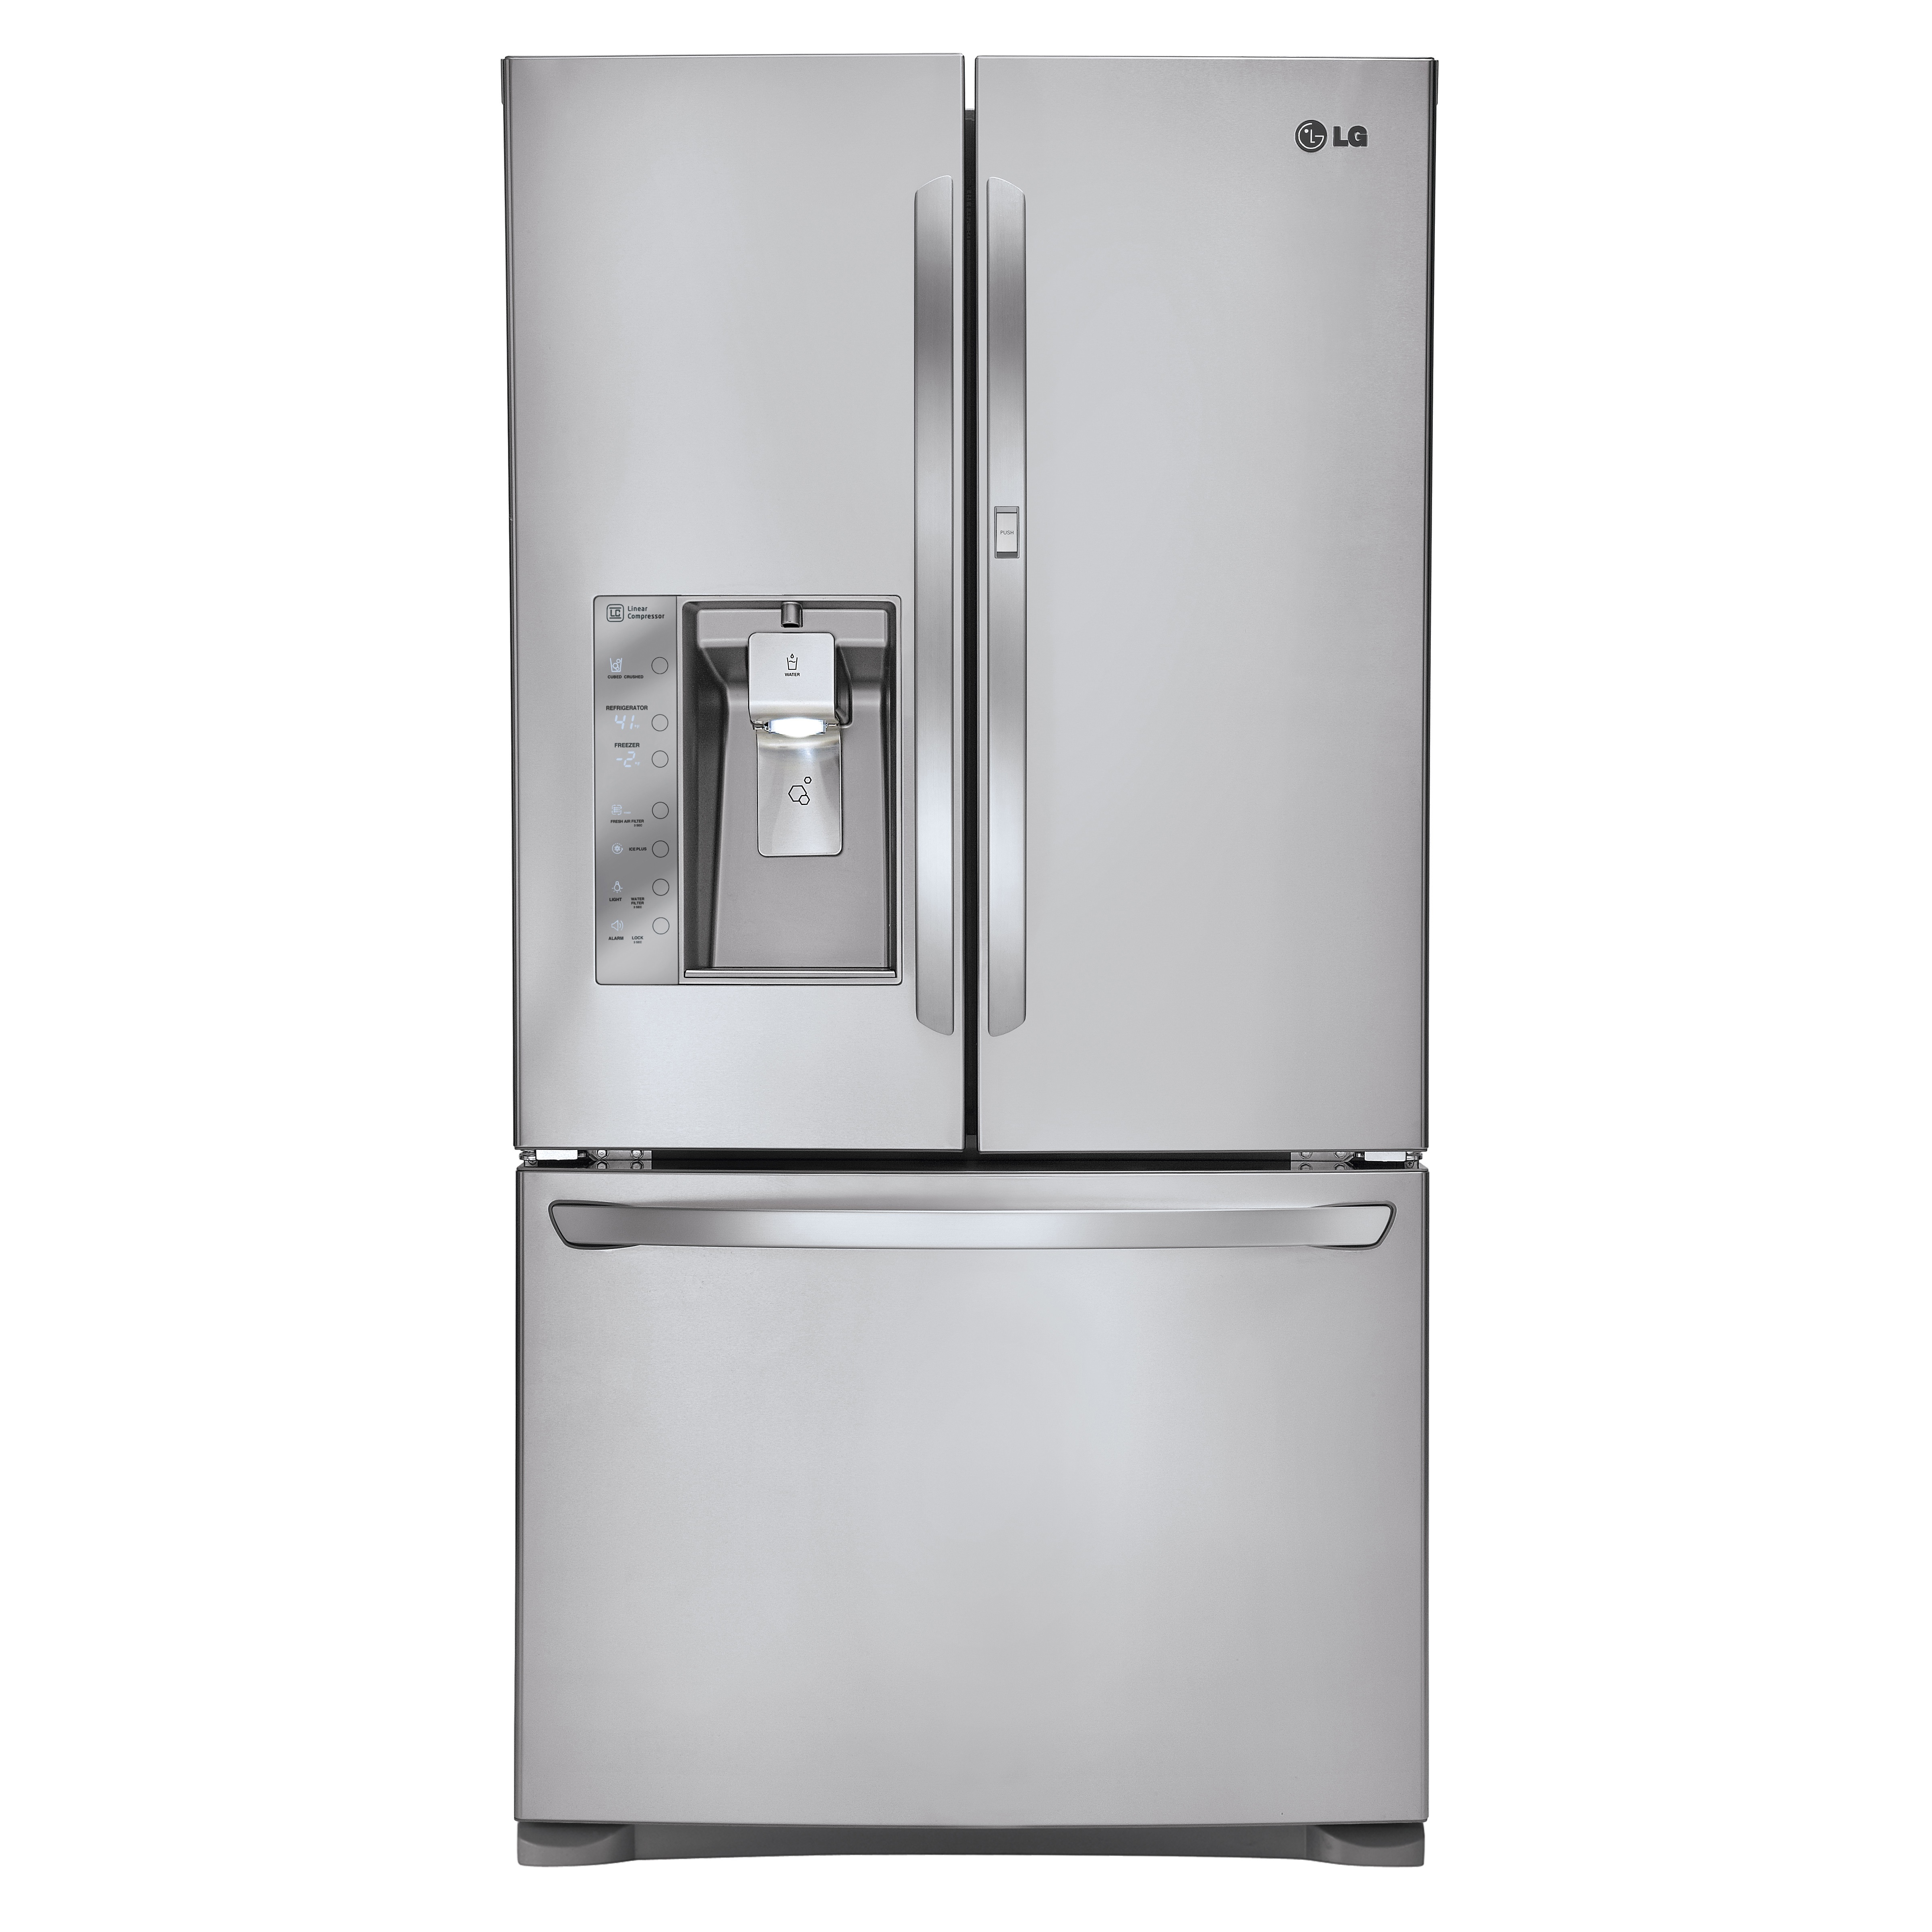 Front view of the LG three-door French-Door refrigerator with its ice and water dispenser on the left door.